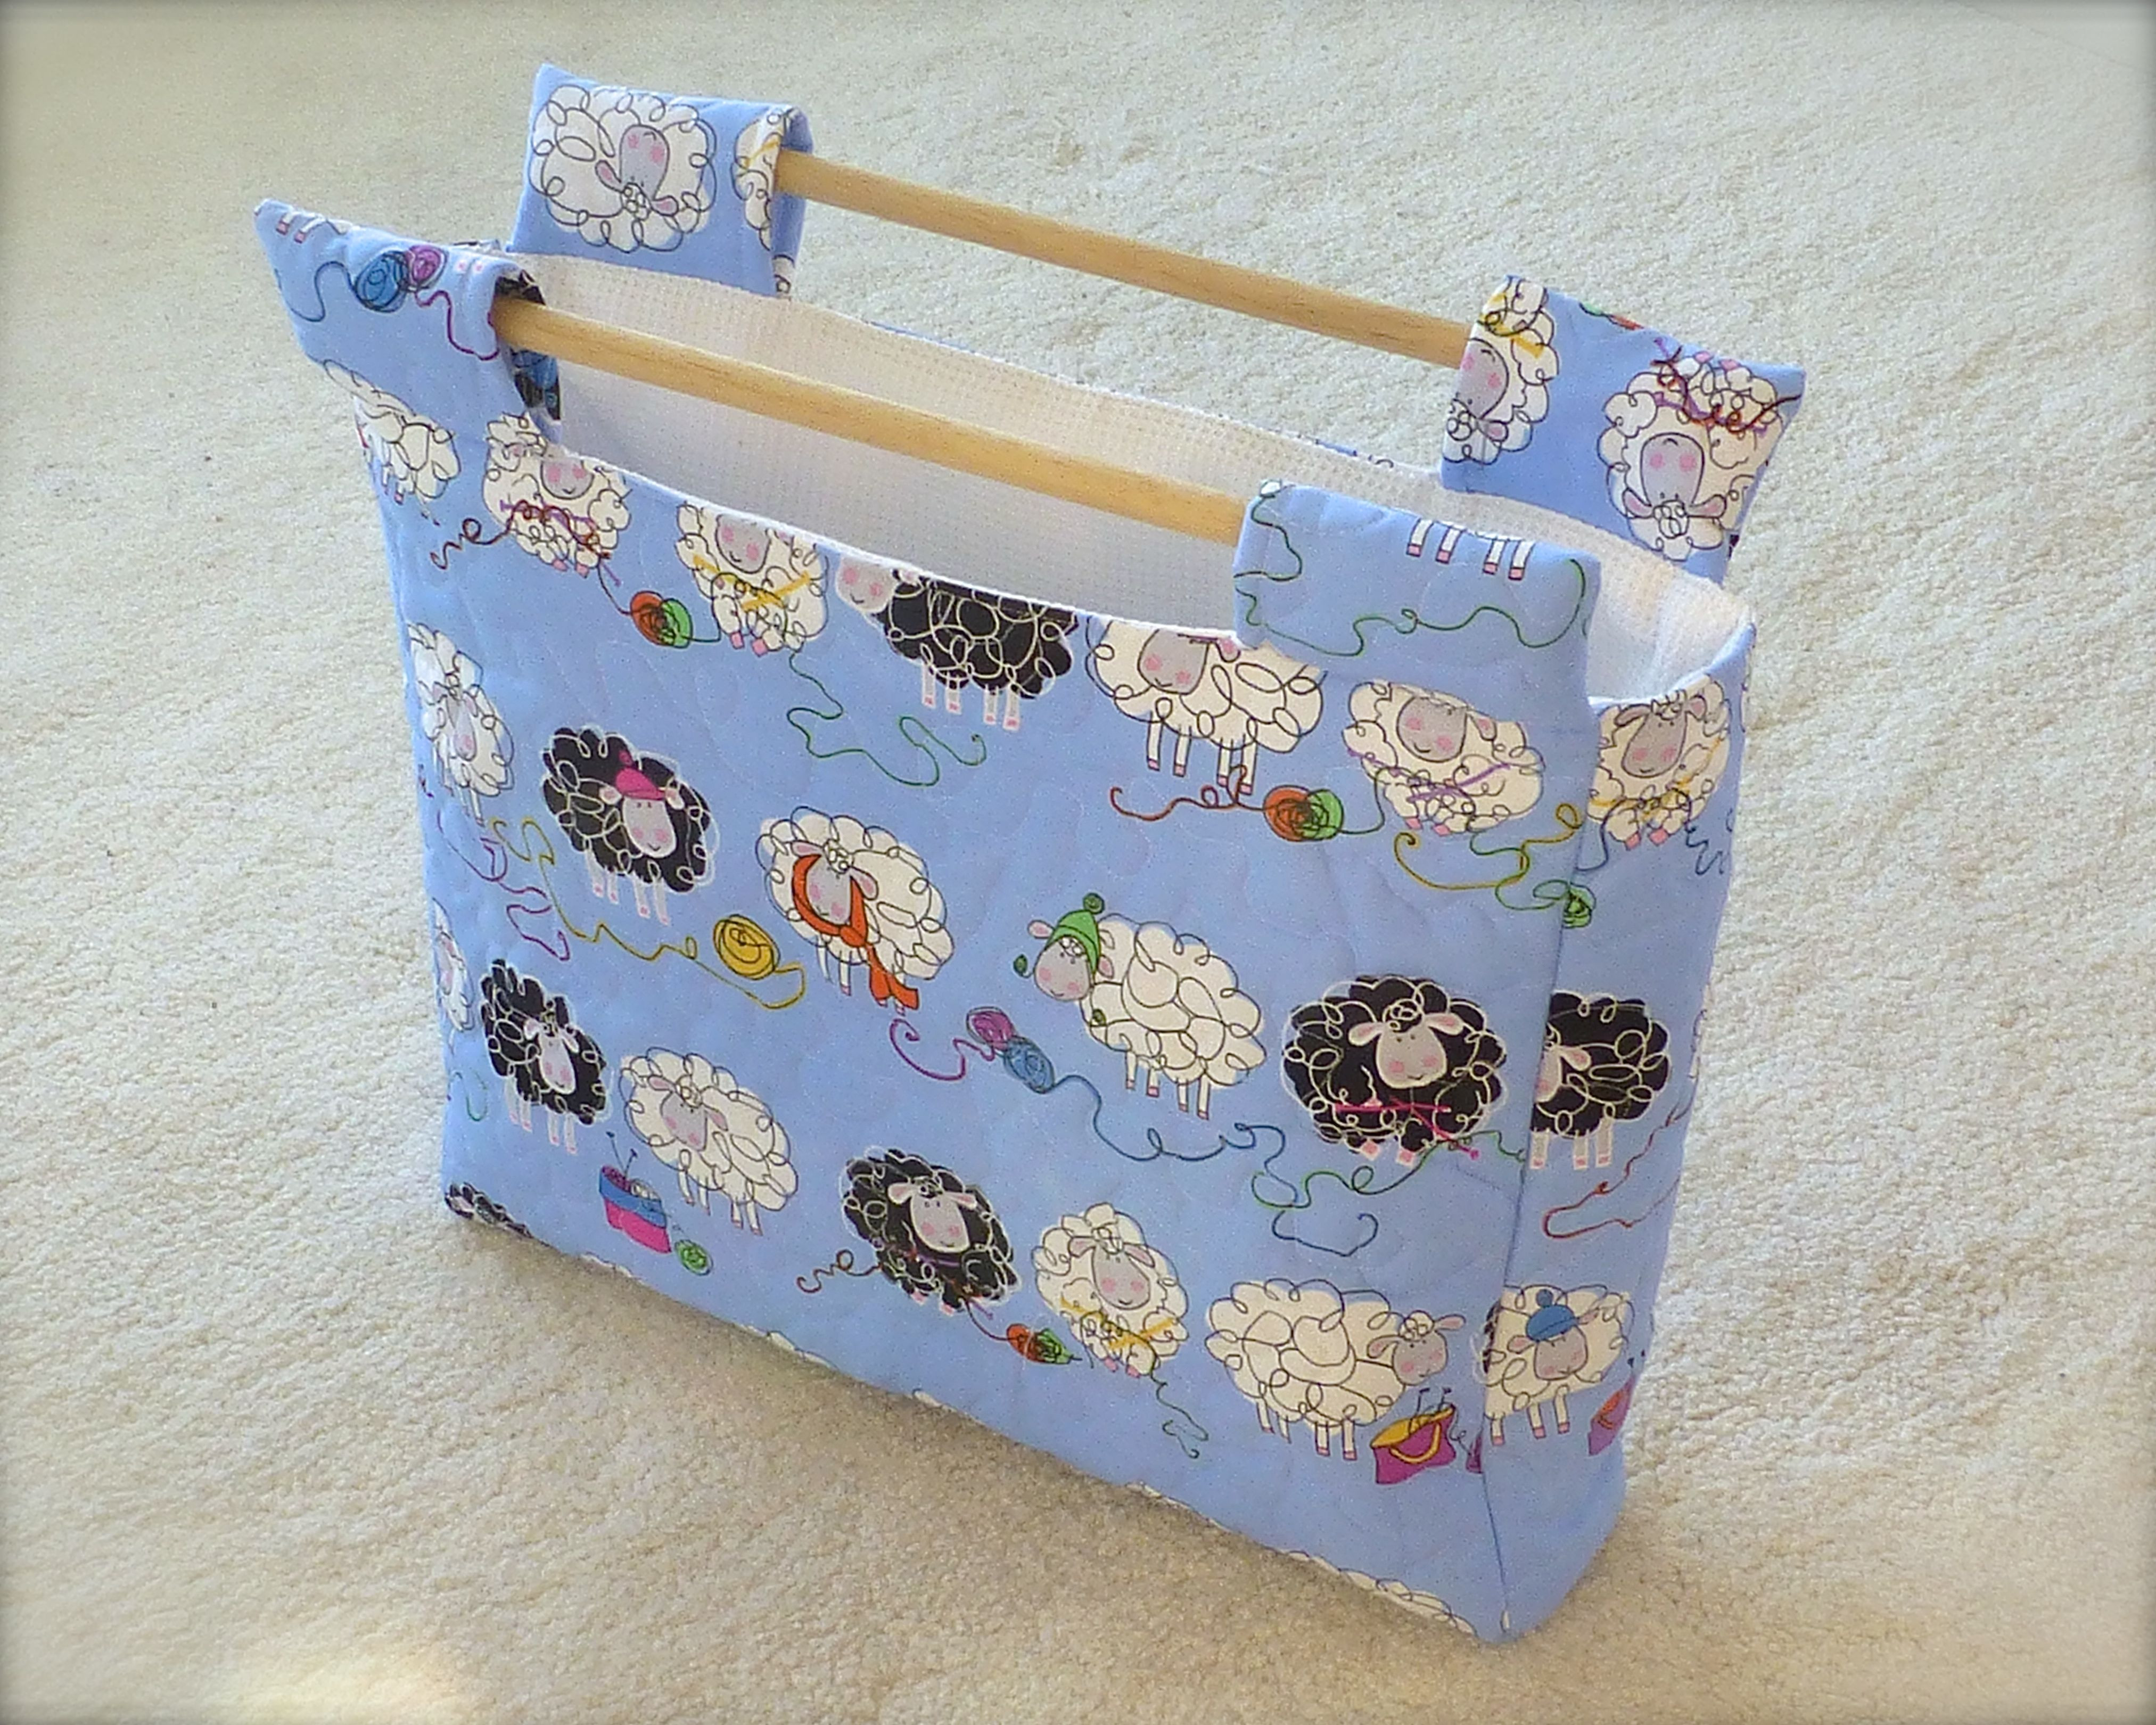 another bag perfect for knitting or crochet